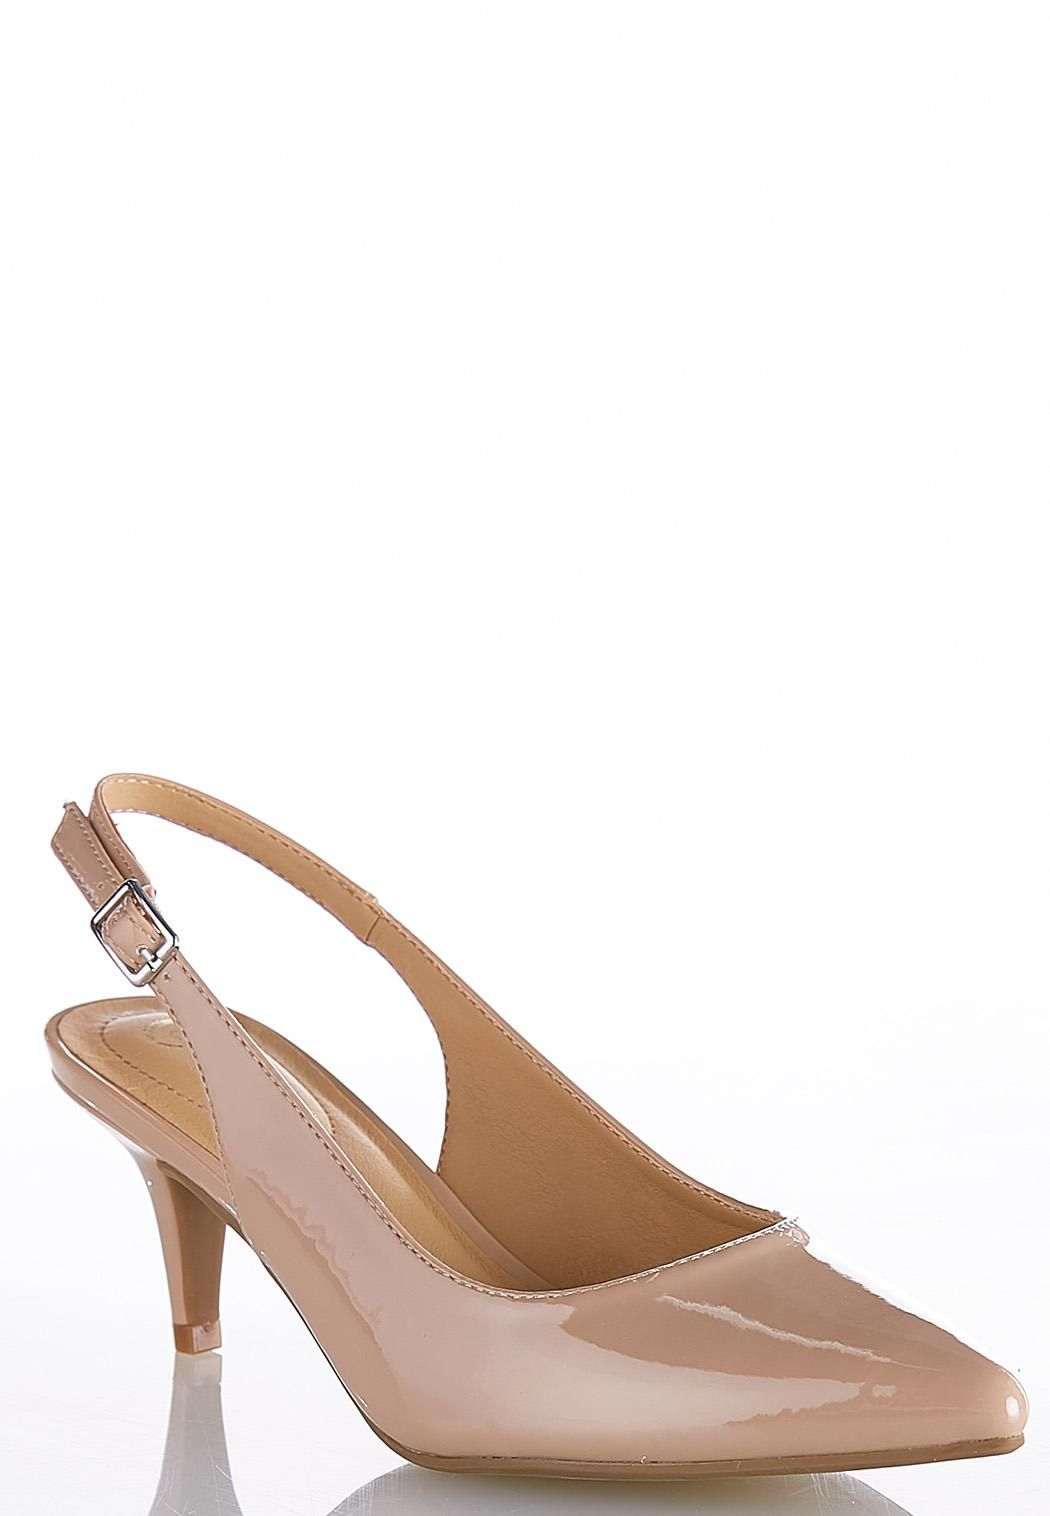 7d031396fe65 Wide Width Patent Slingback Pumps Heels Cato Fashions in 2019